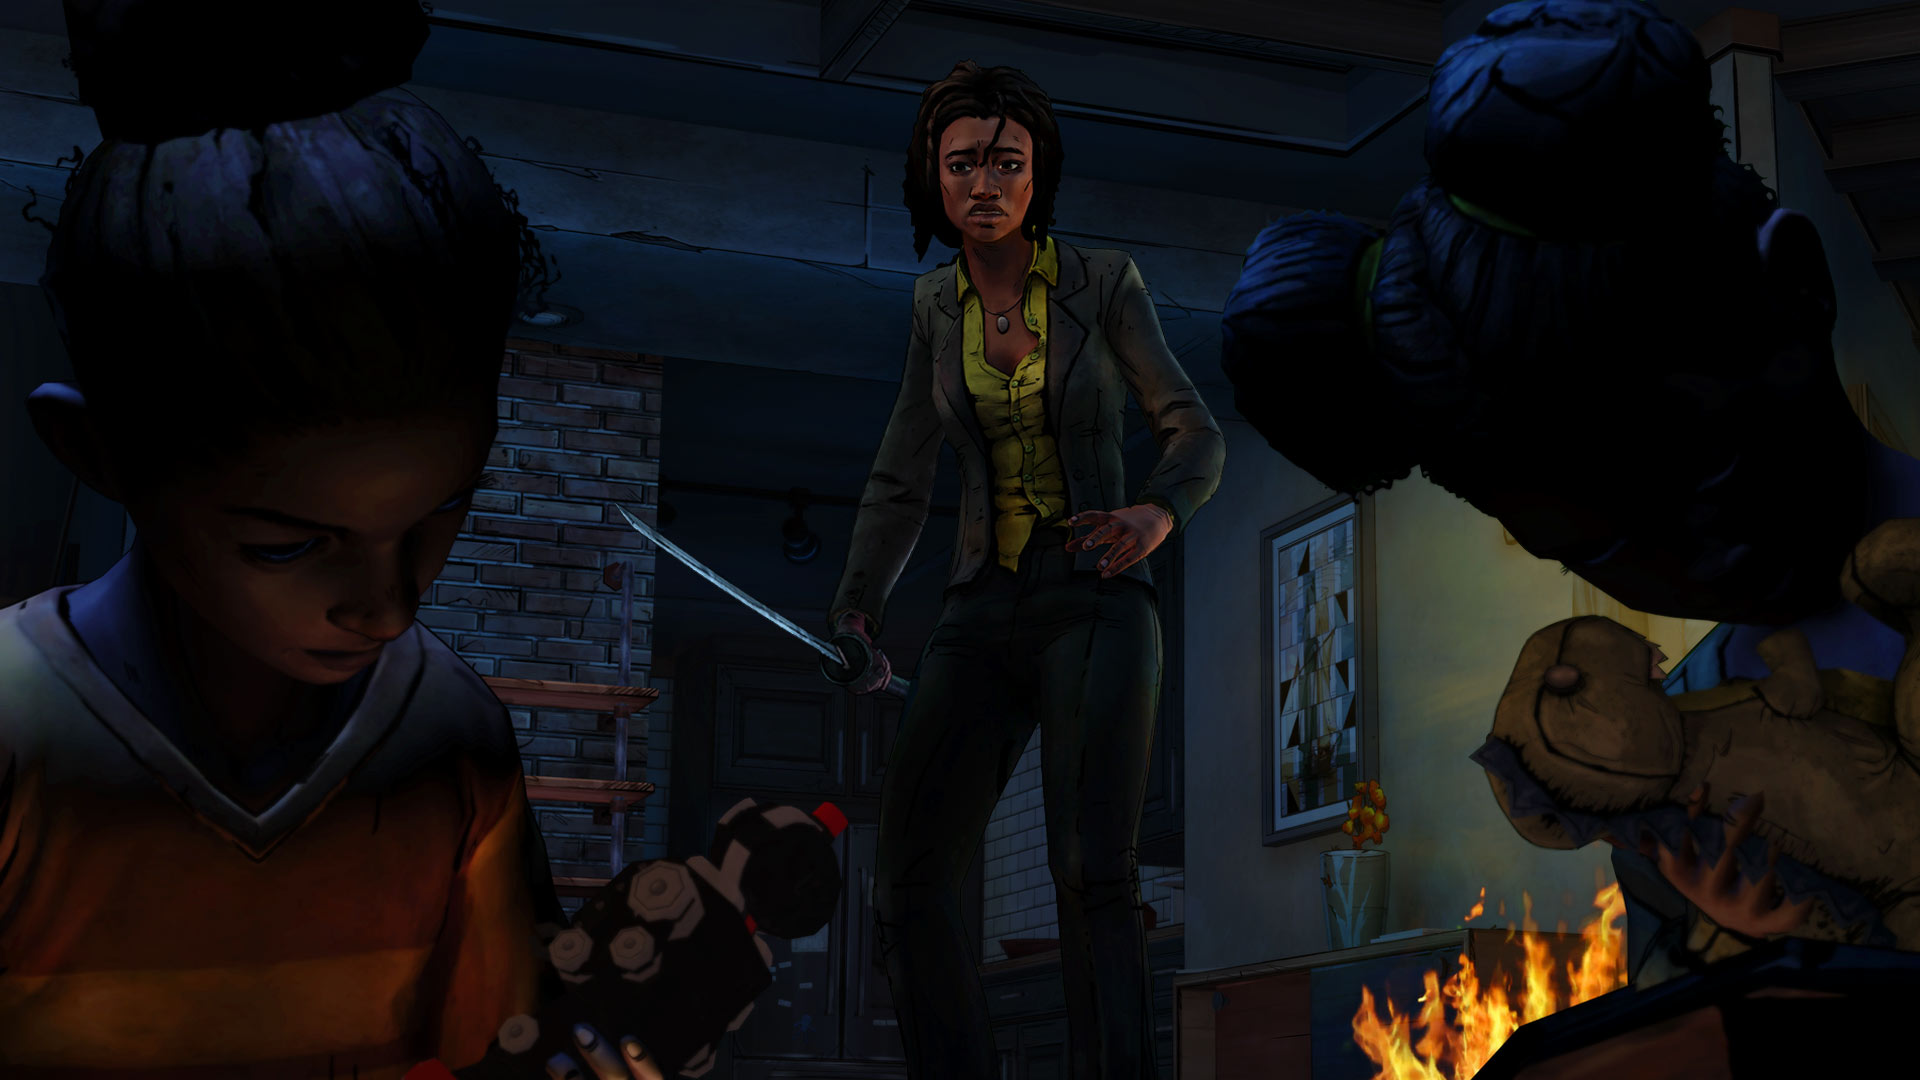 The Walking Dead Michonne A Telltale Miniseries-Episode 1